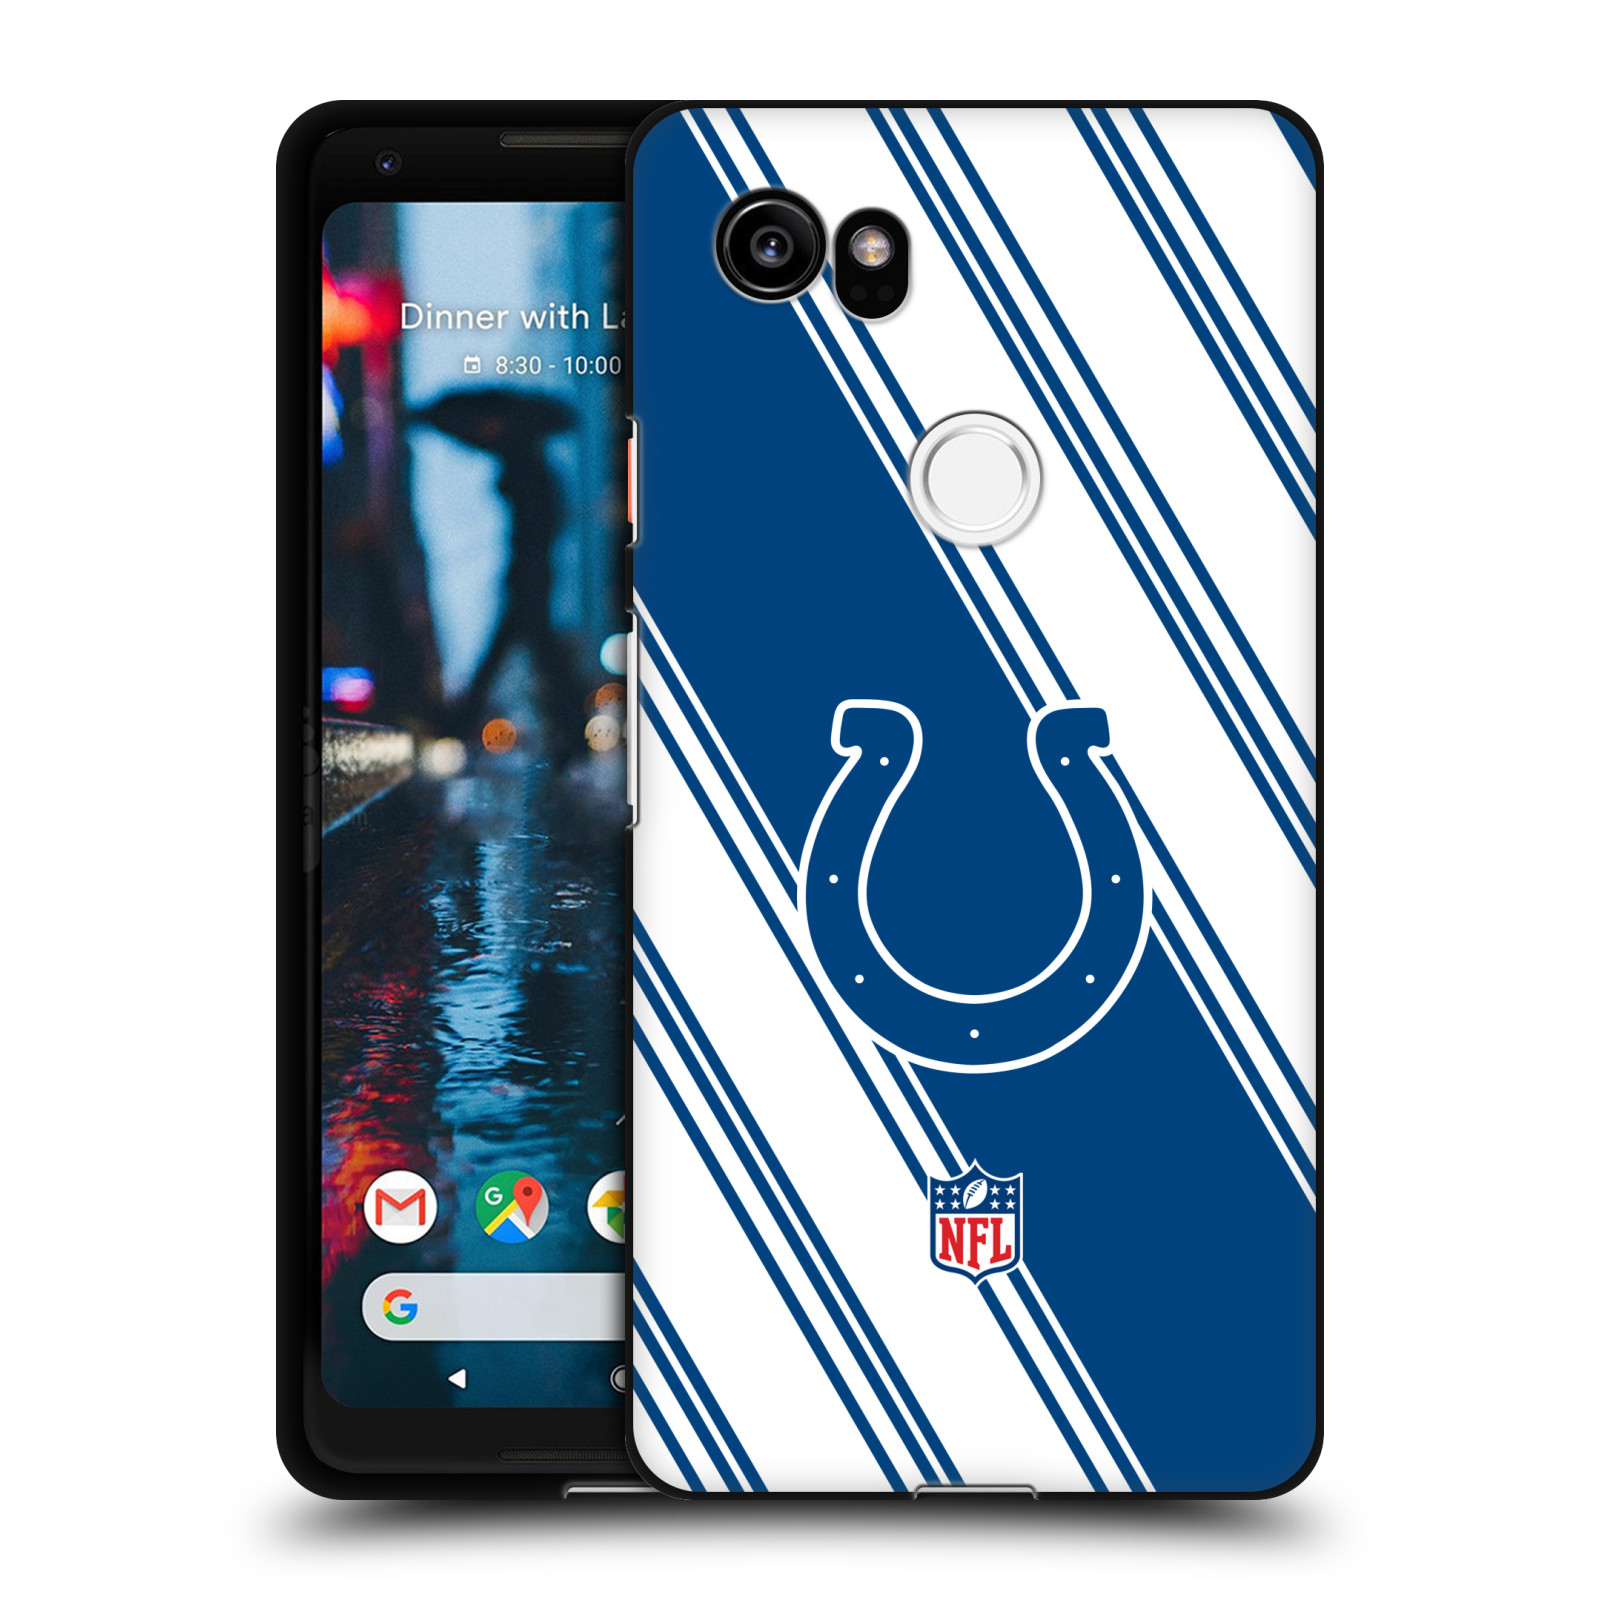 OFFICIAL-NFL-2017-18-INDIANAPOLIS-COLTS-BLACK-SOFT-GEL-CASE-FOR-GOOGLE-PHONES